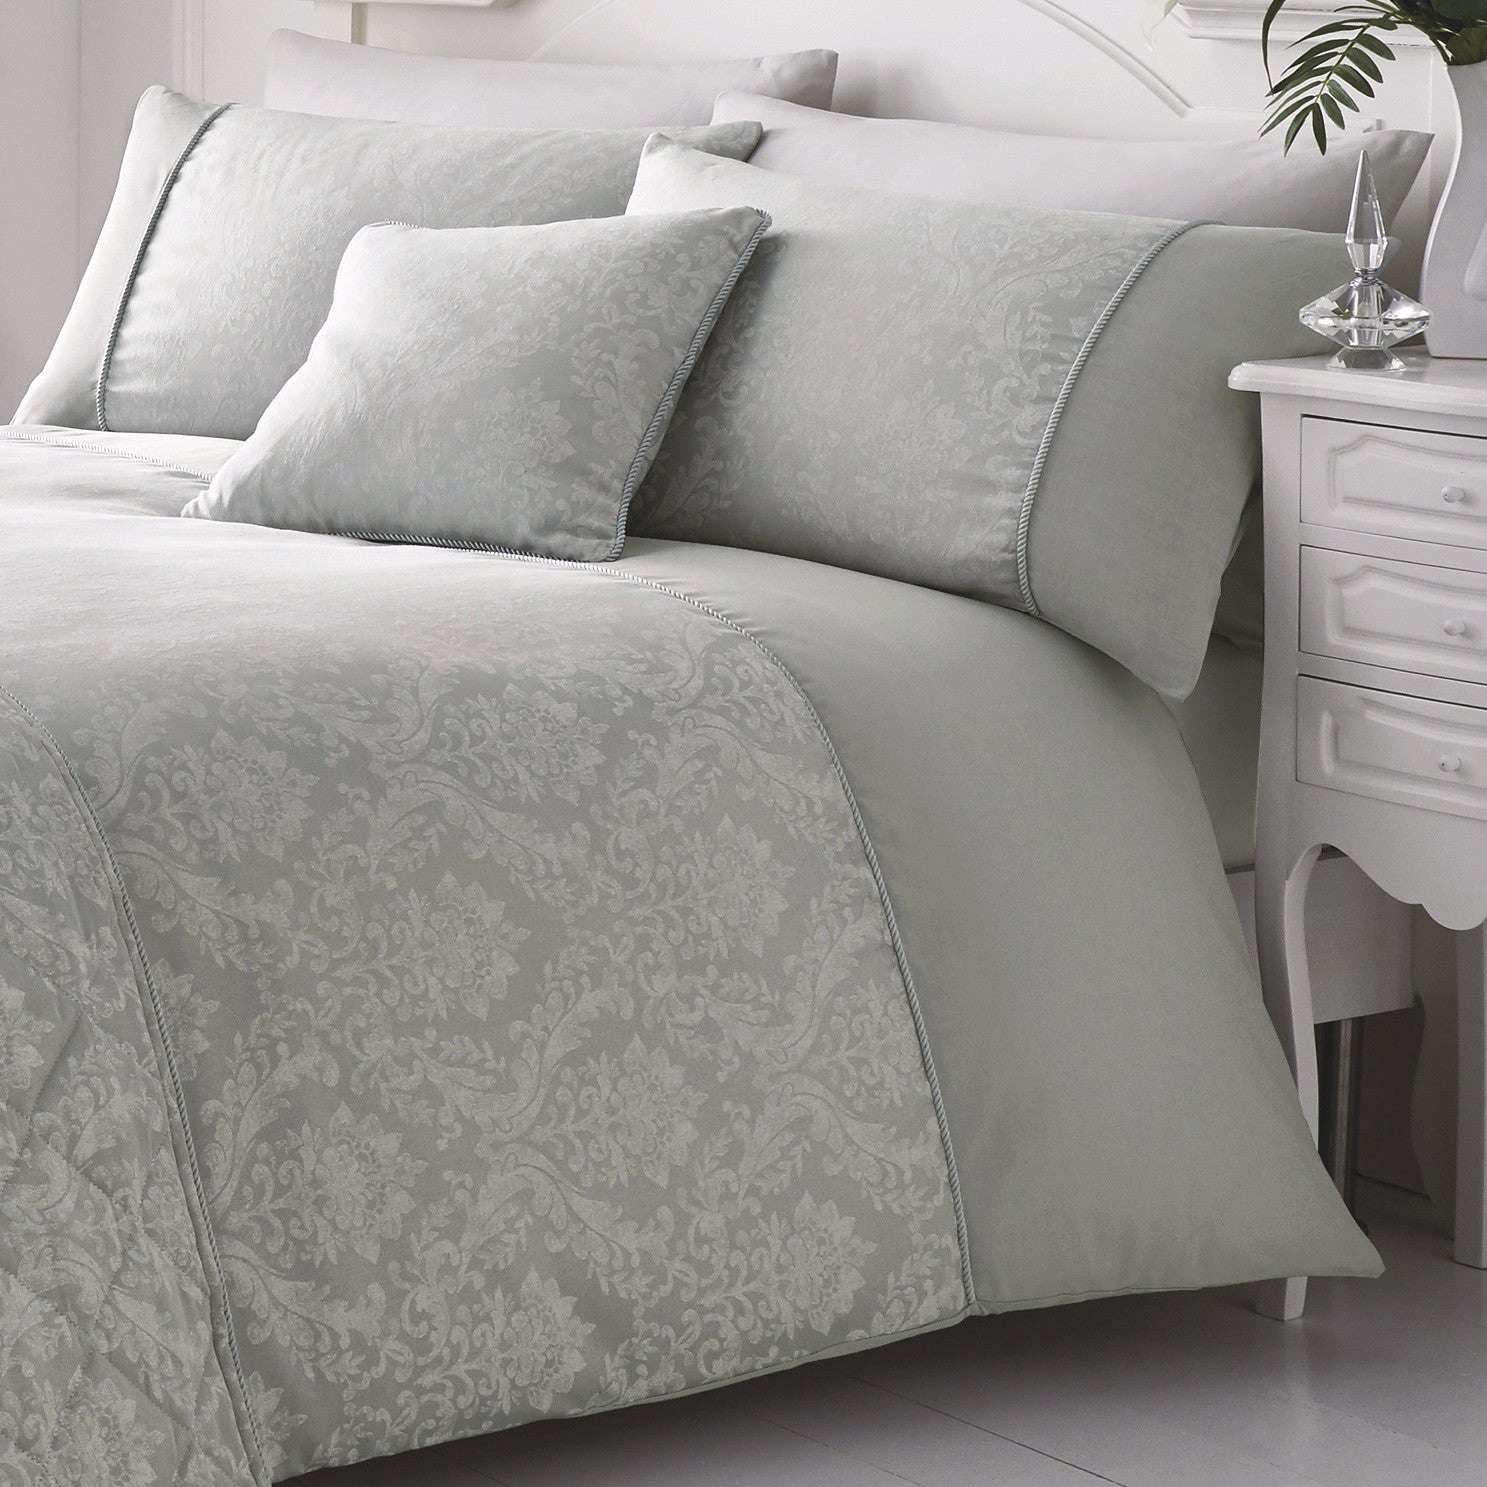 lovely jacquard set silver grey sets duvet cover pillowcase beautiful and bestduvetcovers triton uk of club